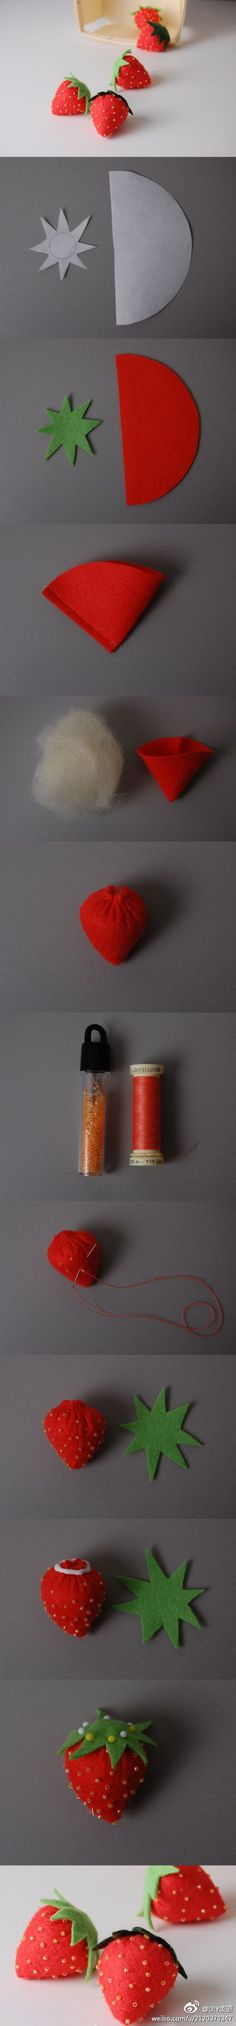 DIY Easy Small Strawberry